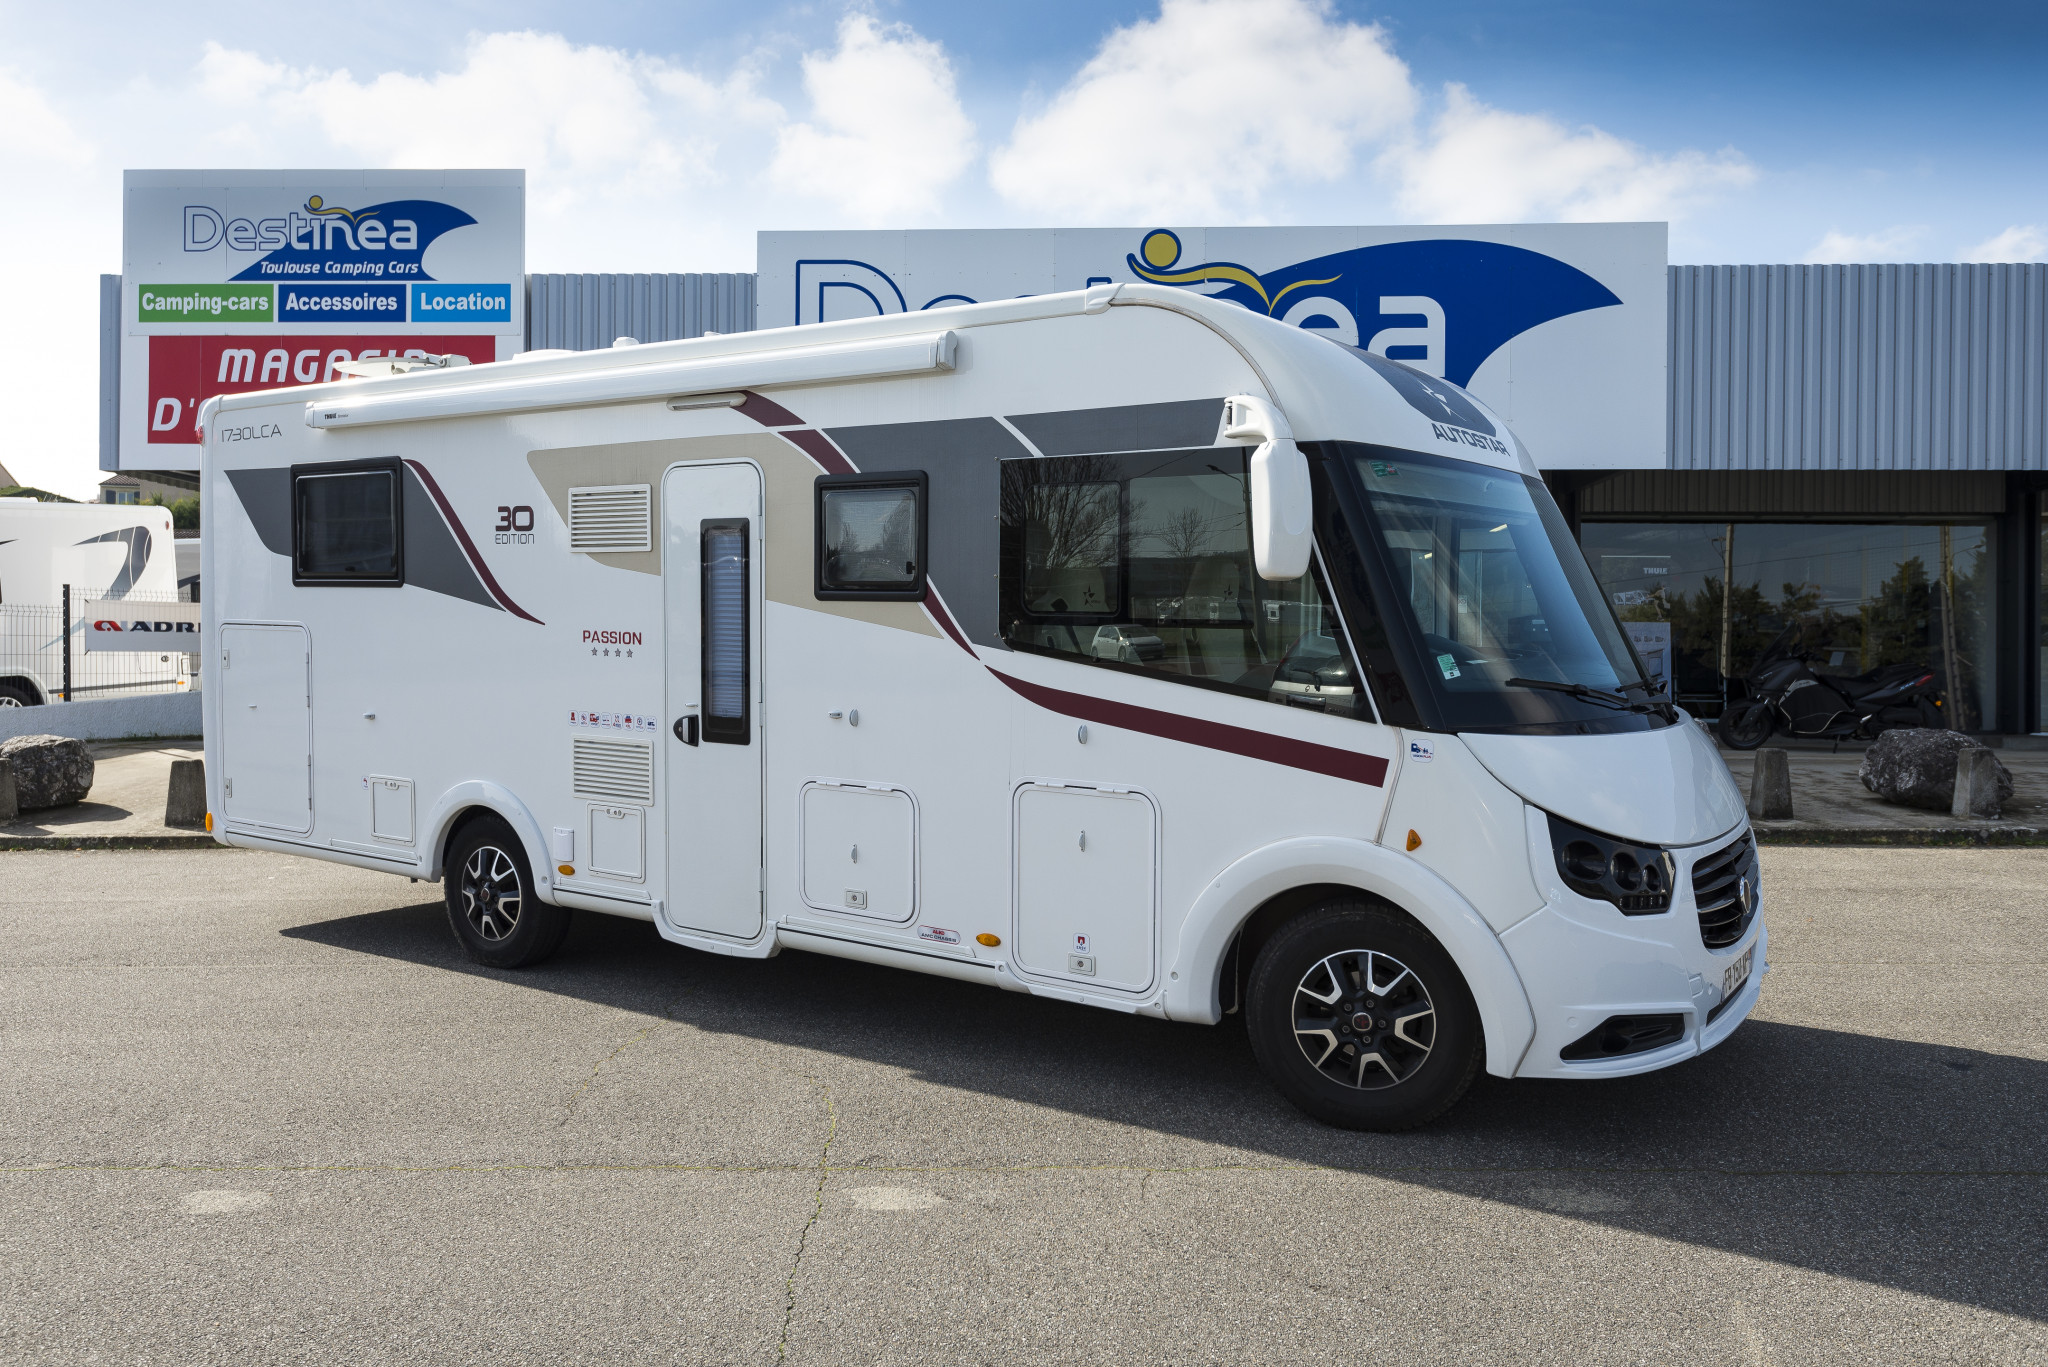 Camping-car AUTOSTAR I730 LCA PASSION 30TH EDITION - BVM6